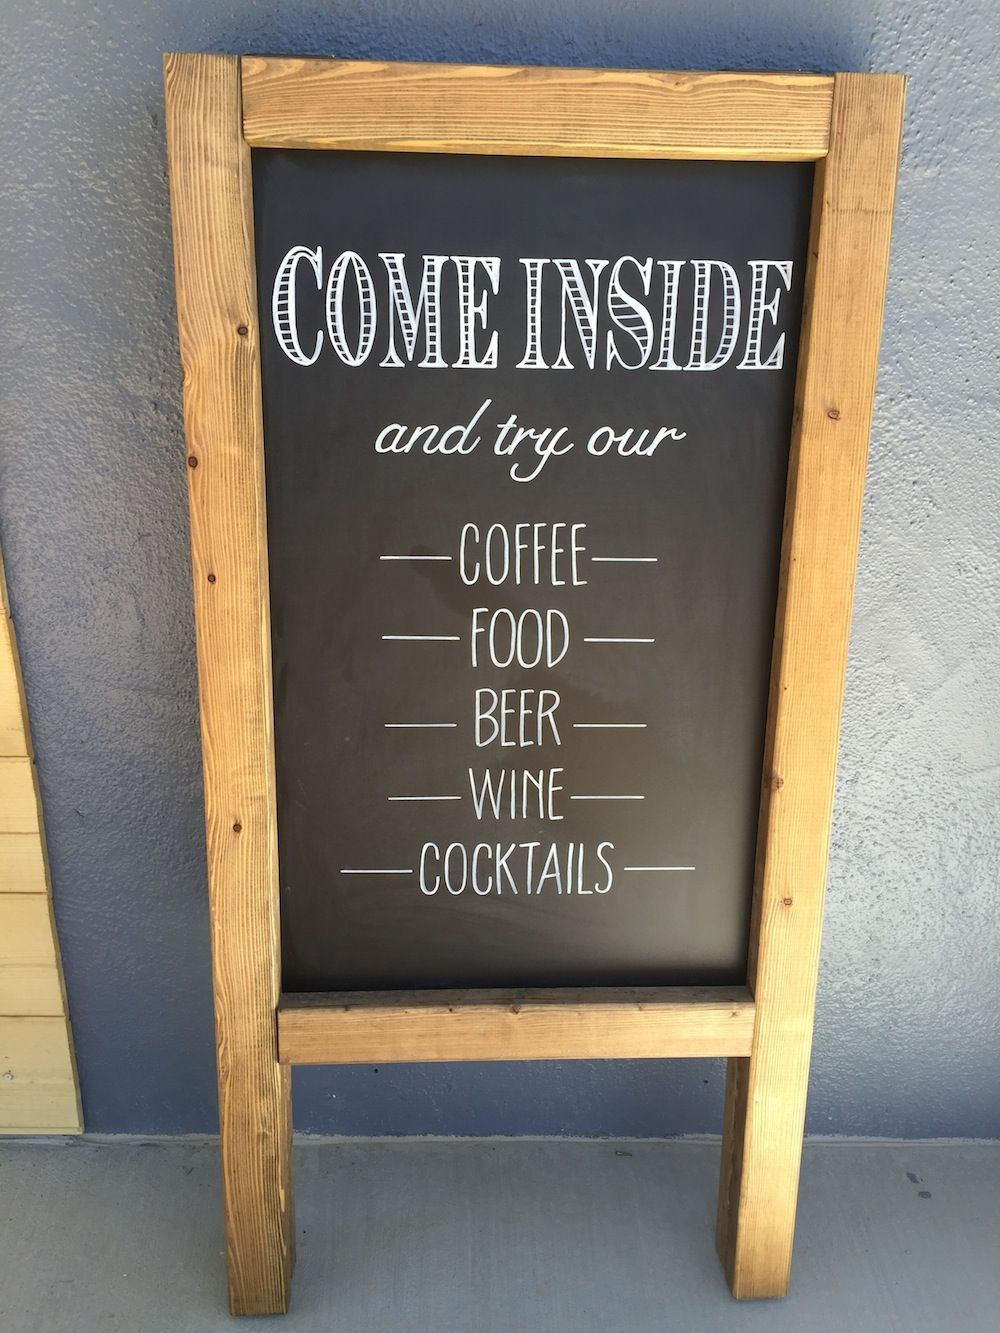 inside' business signage. Coffee Shop sandwich